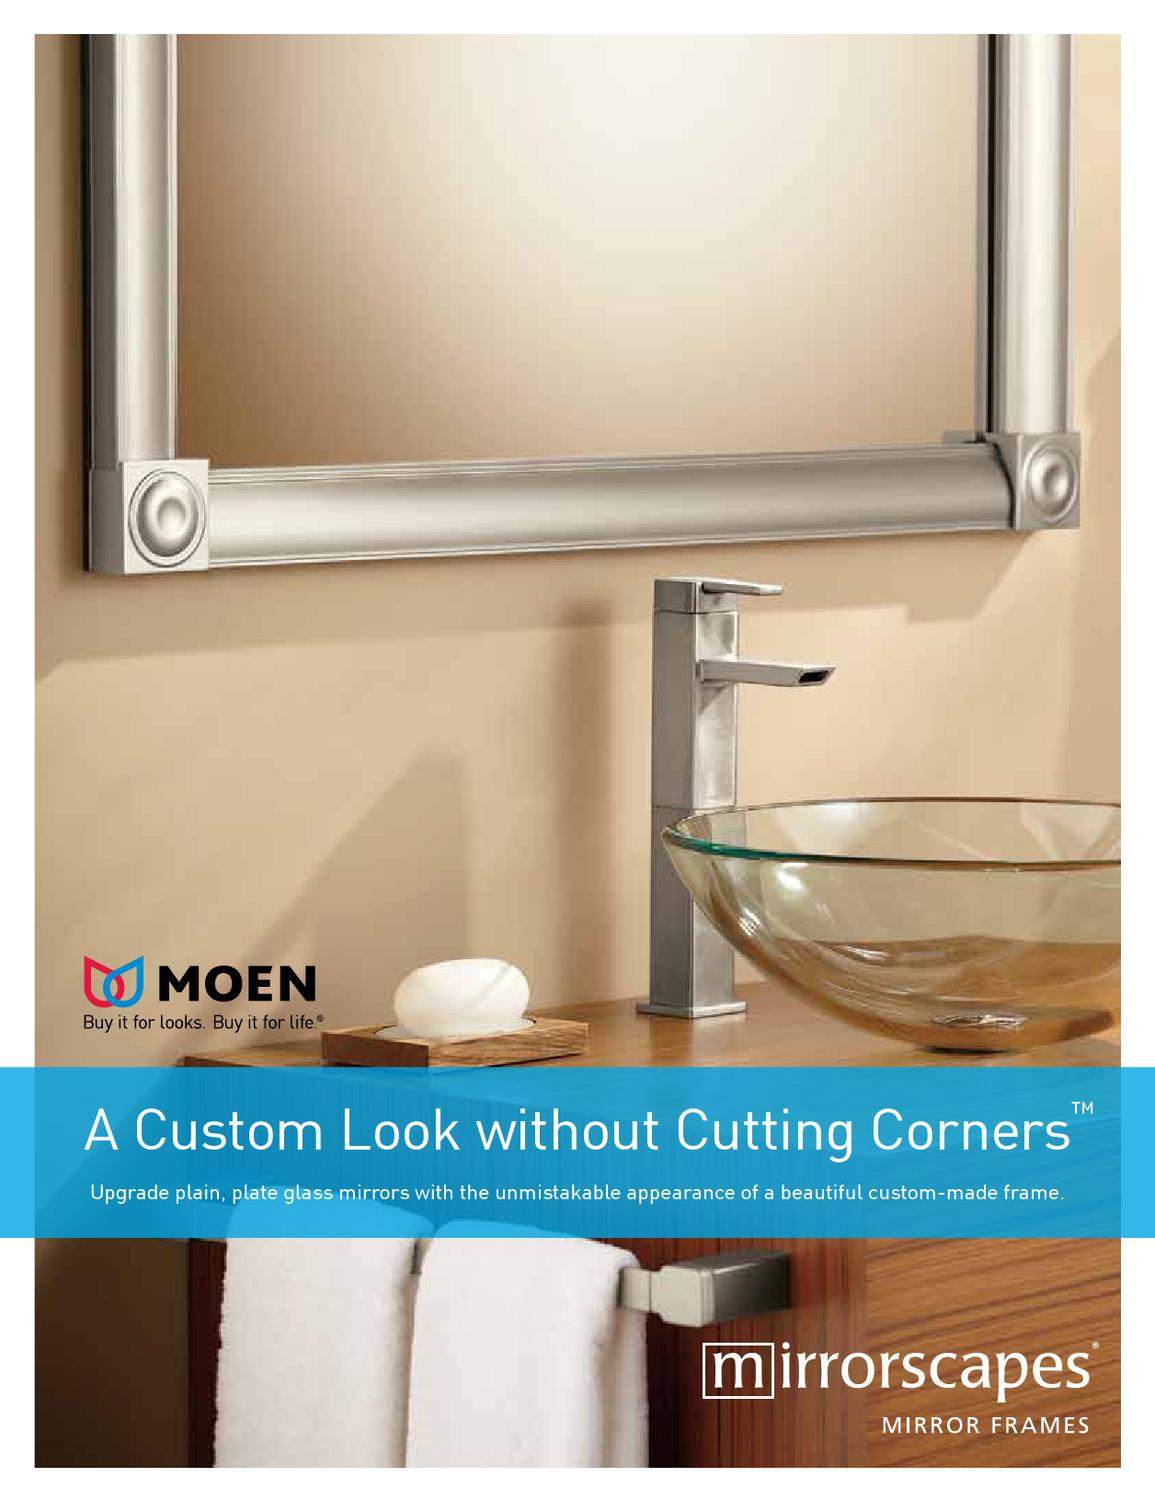 Moen Mirrorscapes By Showroom Partners Issuu